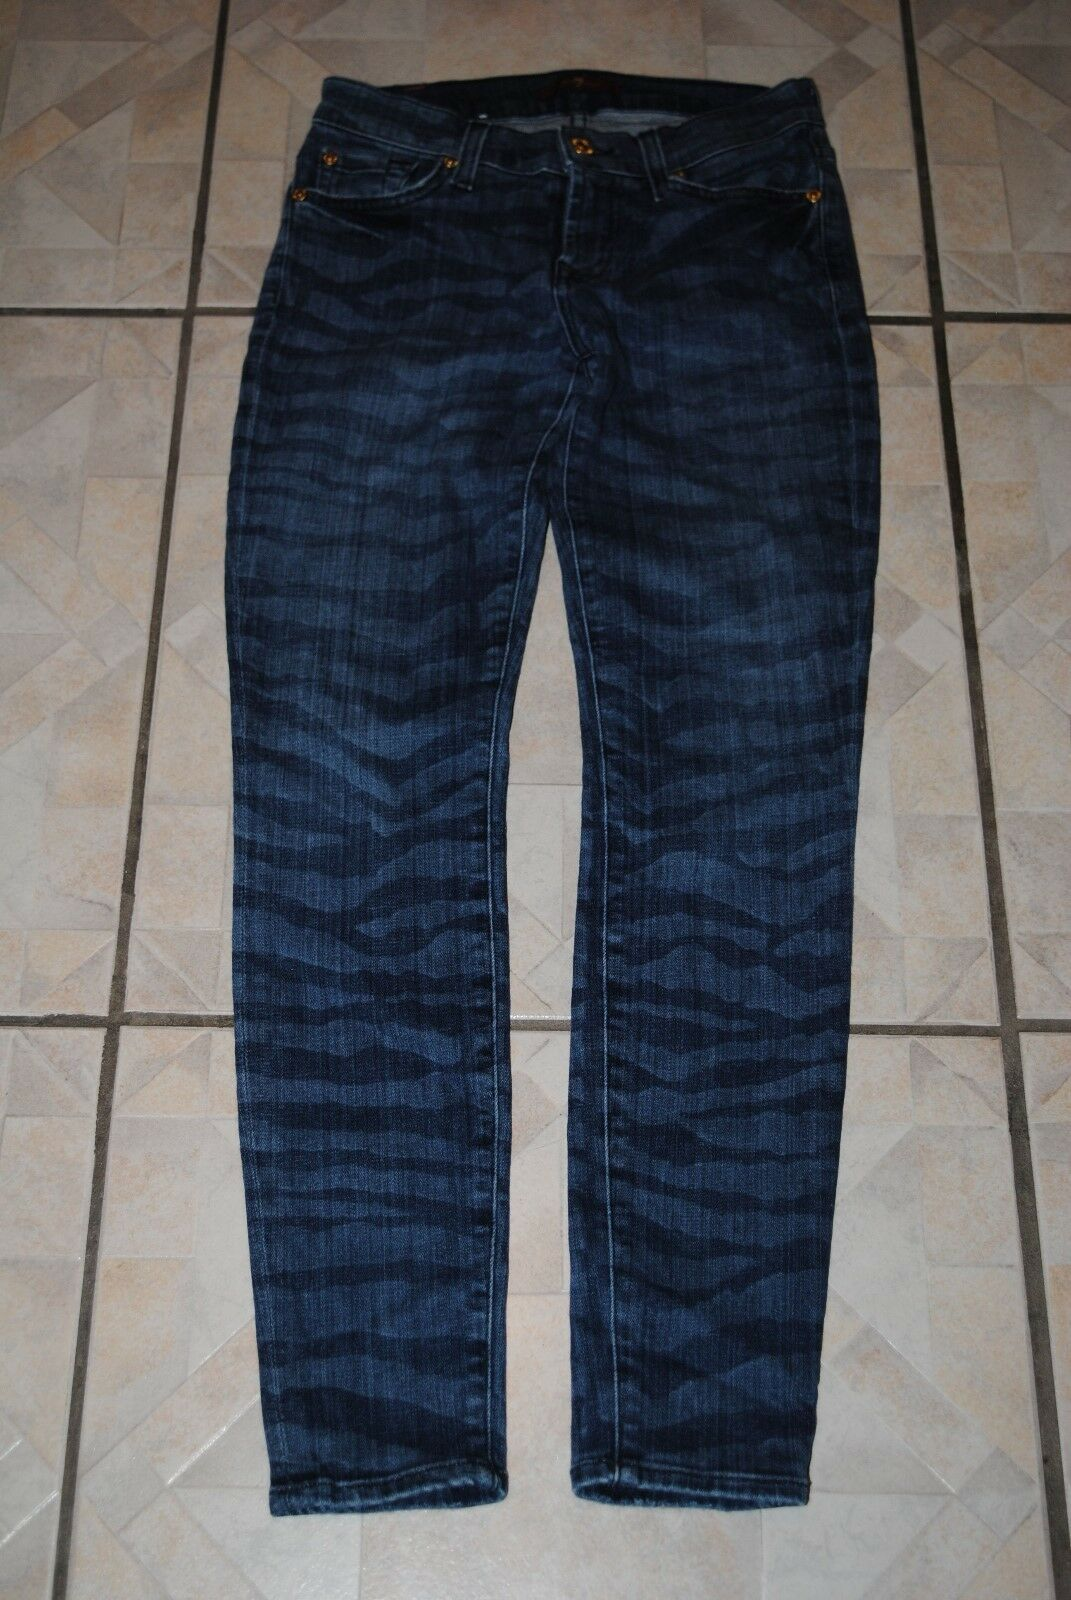 7 FOR ALL MANKIND The Crop Skinny in Laser Zebra Women's Size 24 Waist